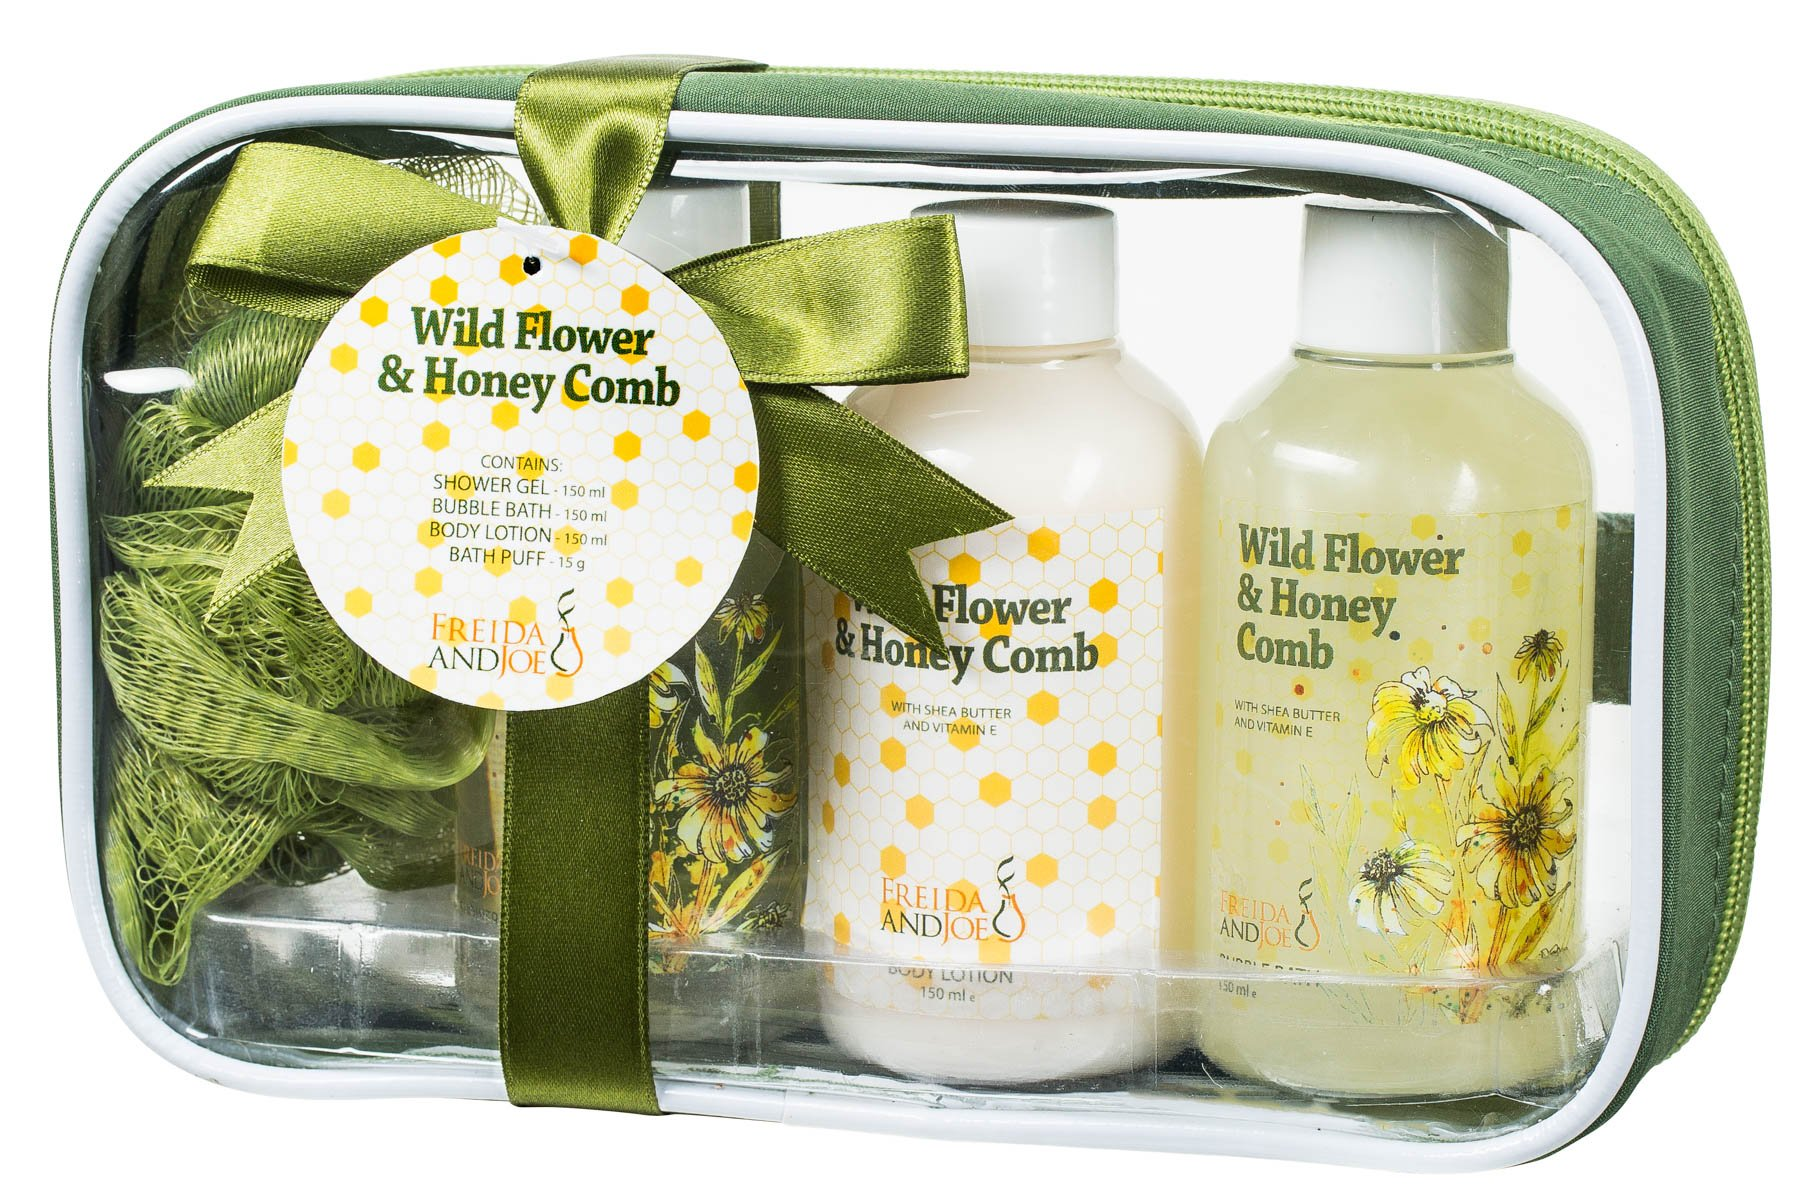 Freida and Joe Relaxing Wild Flower & Honey Comb Scent Bath, Body, Beauty, Spa, Shower, Travel Bag Gift Set Kit Perfect for Women Skin Care, Contains Shower Gel, Bubble Bath, Body Lotion, Bath Puff